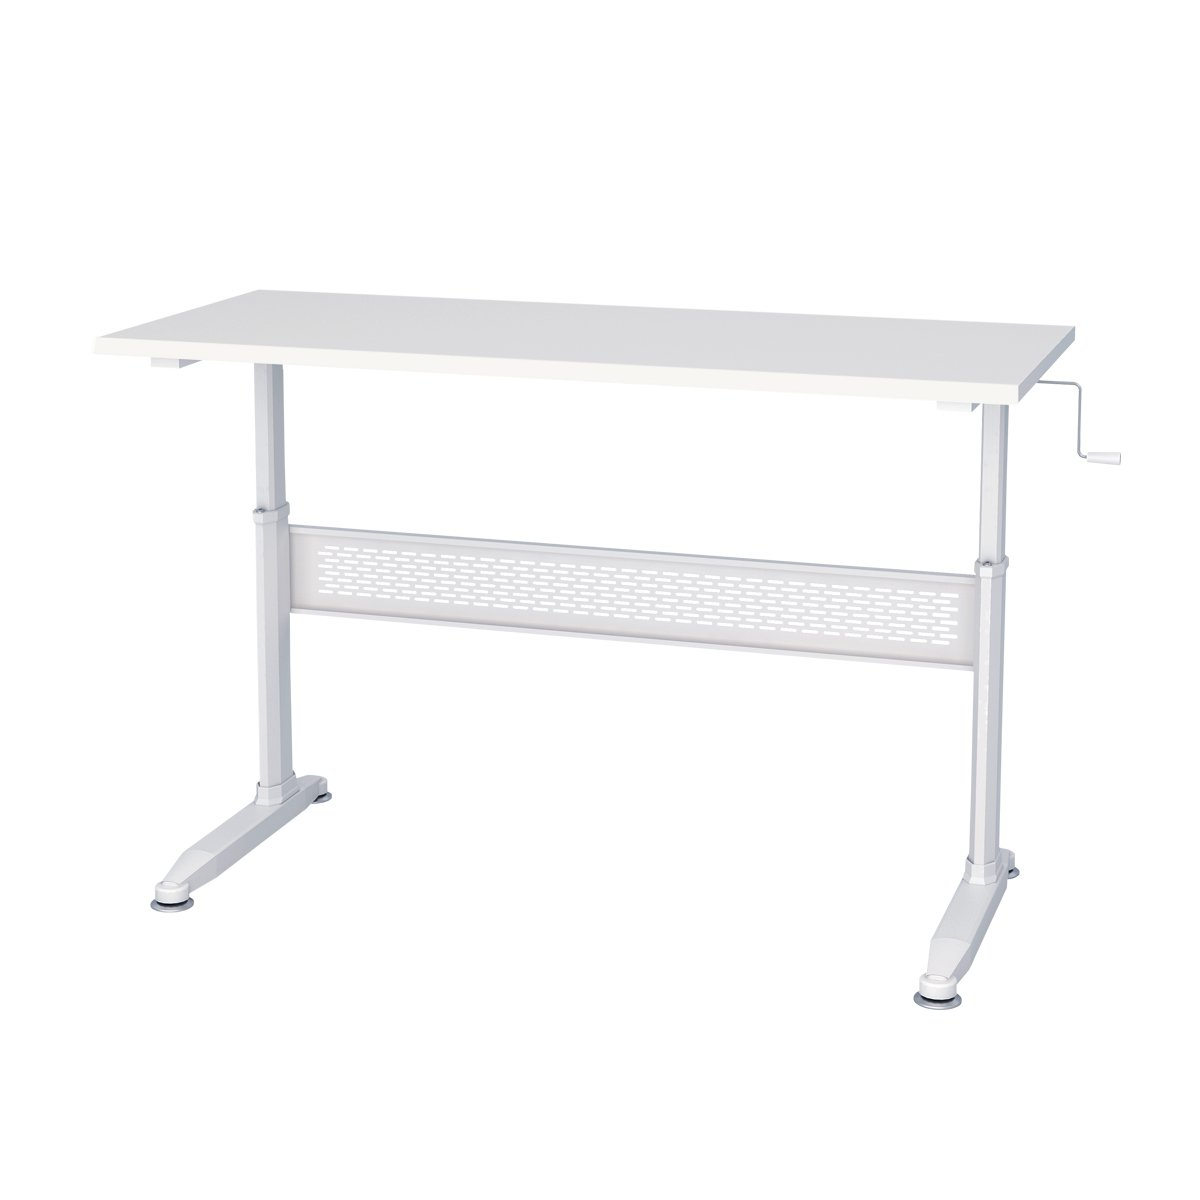 Standing Desk-55'' Crank Steel Adjustable Sit to Stand Up Desk in White by DEVAISE